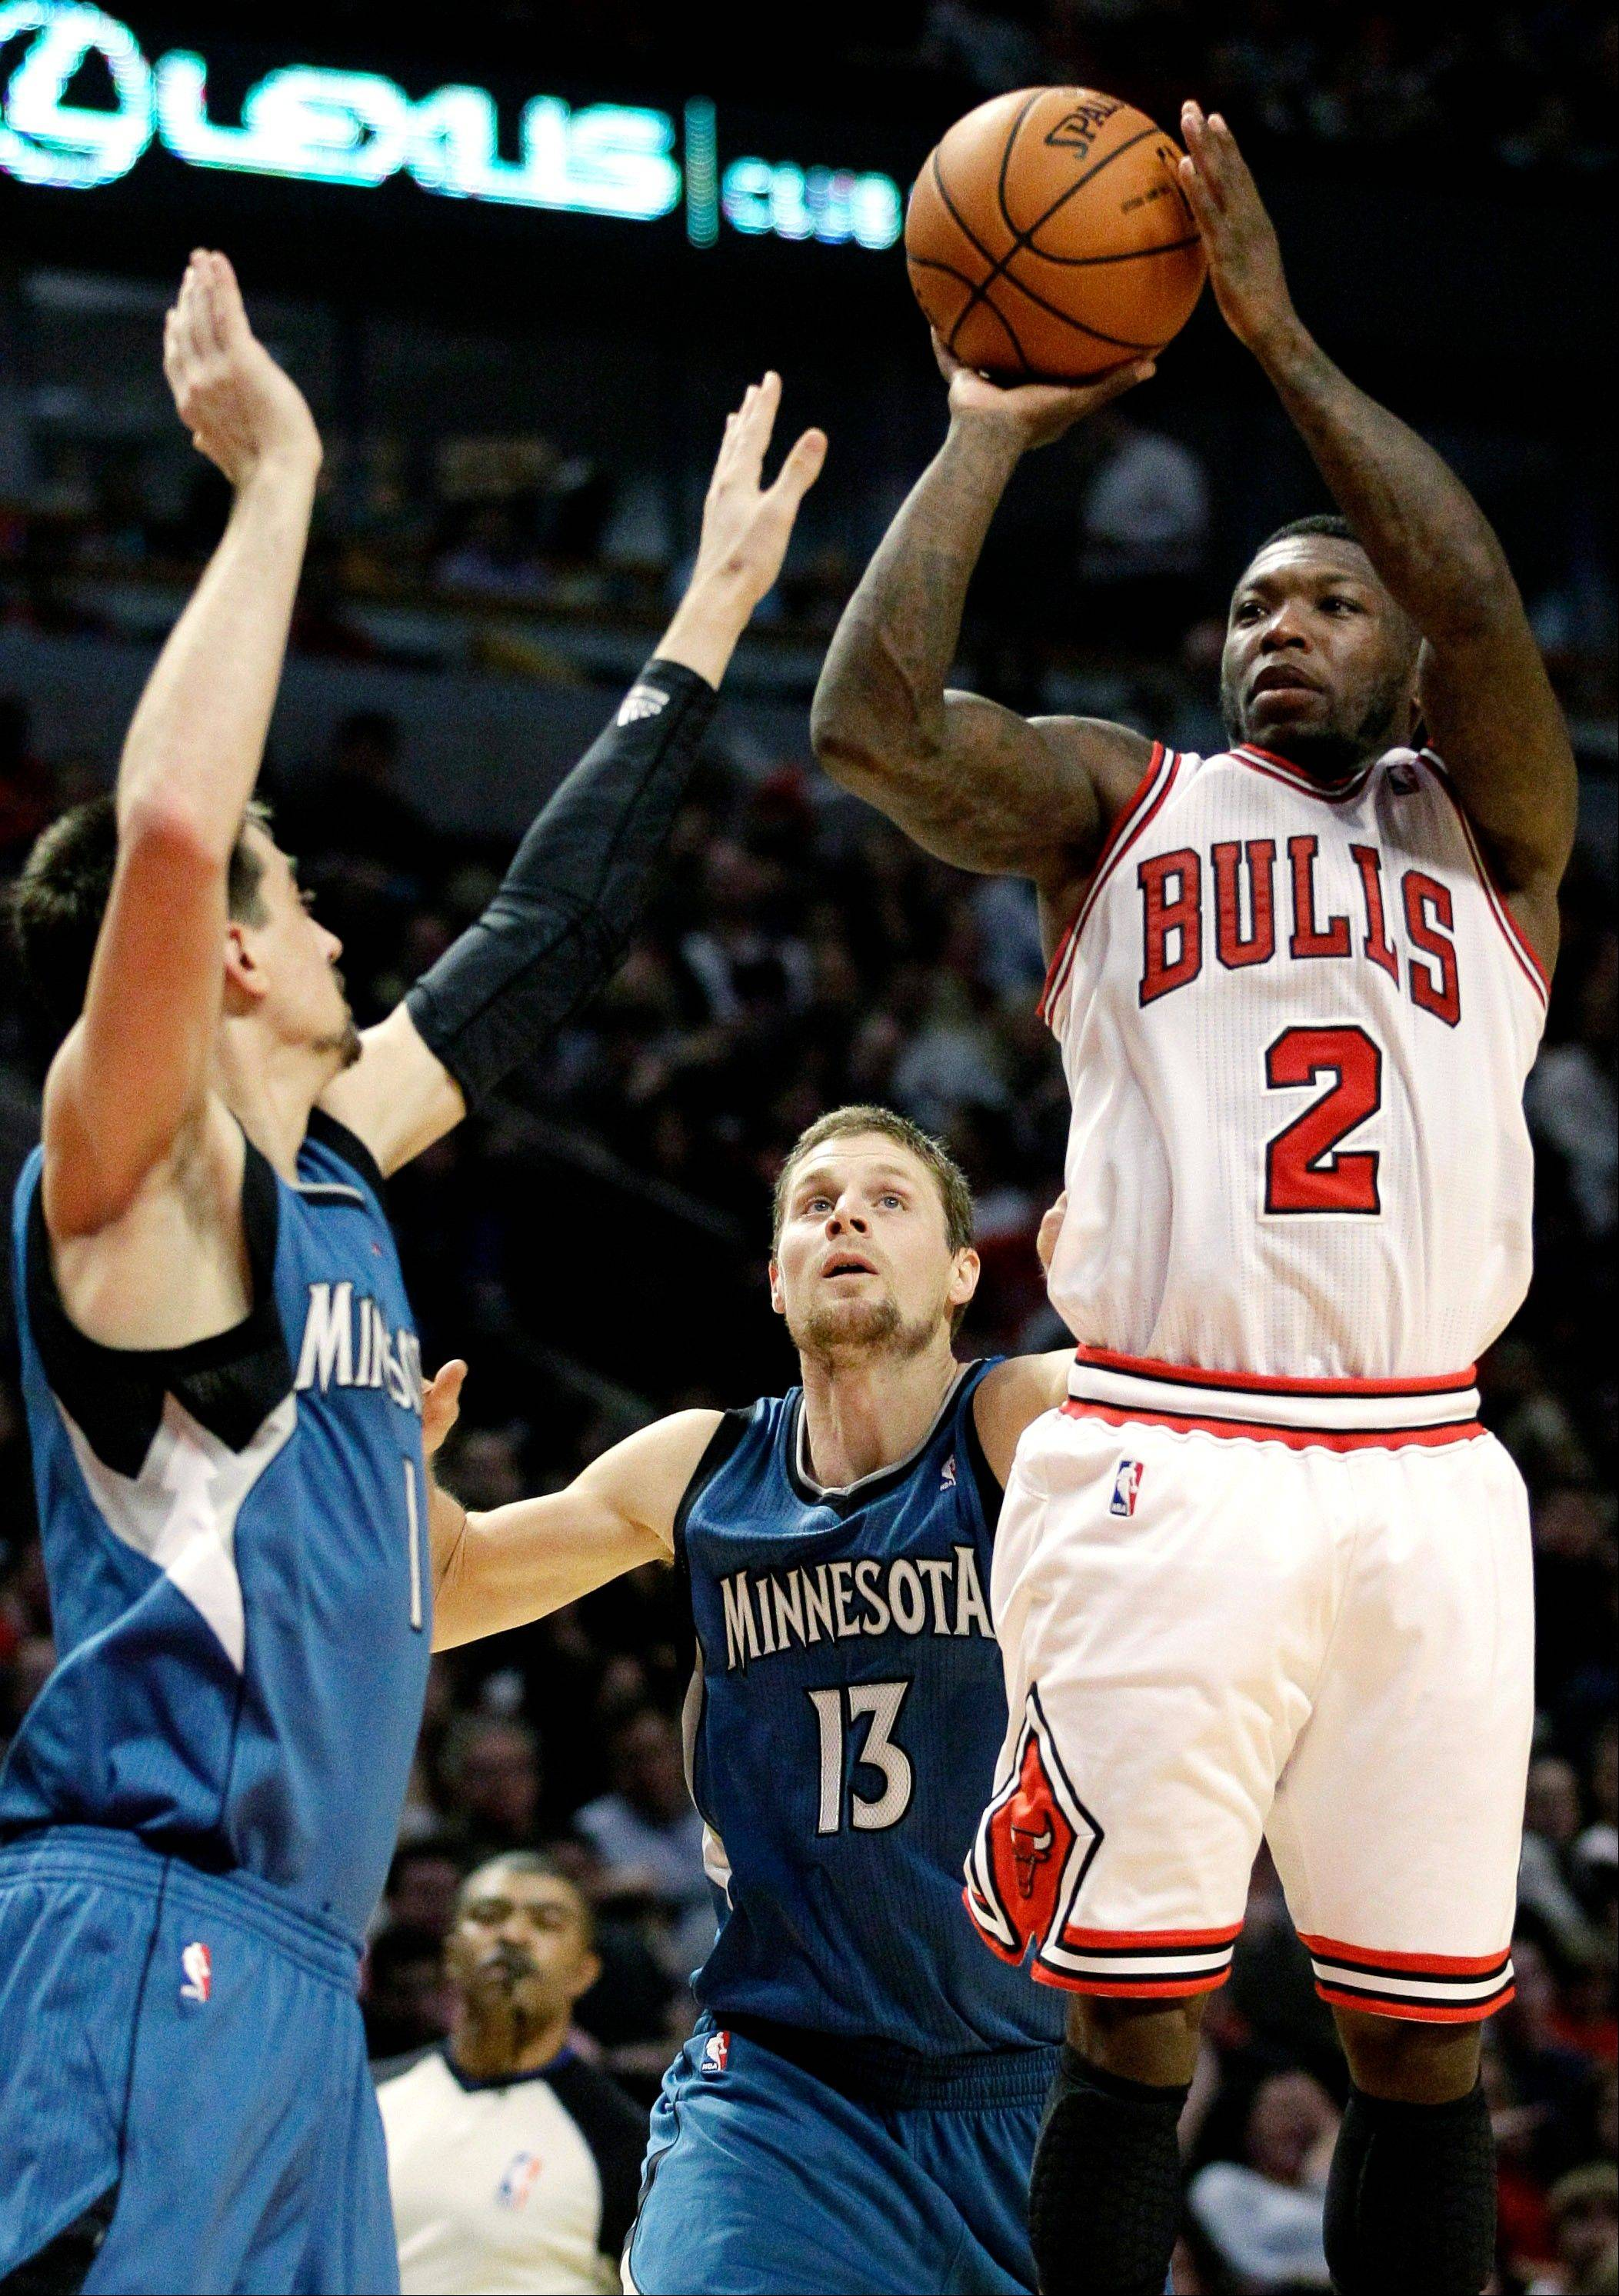 Bulls guard Nate Robinson (2) will get the call Monday night if Kirk Hinrich hip strain keeps him out of the lineup.